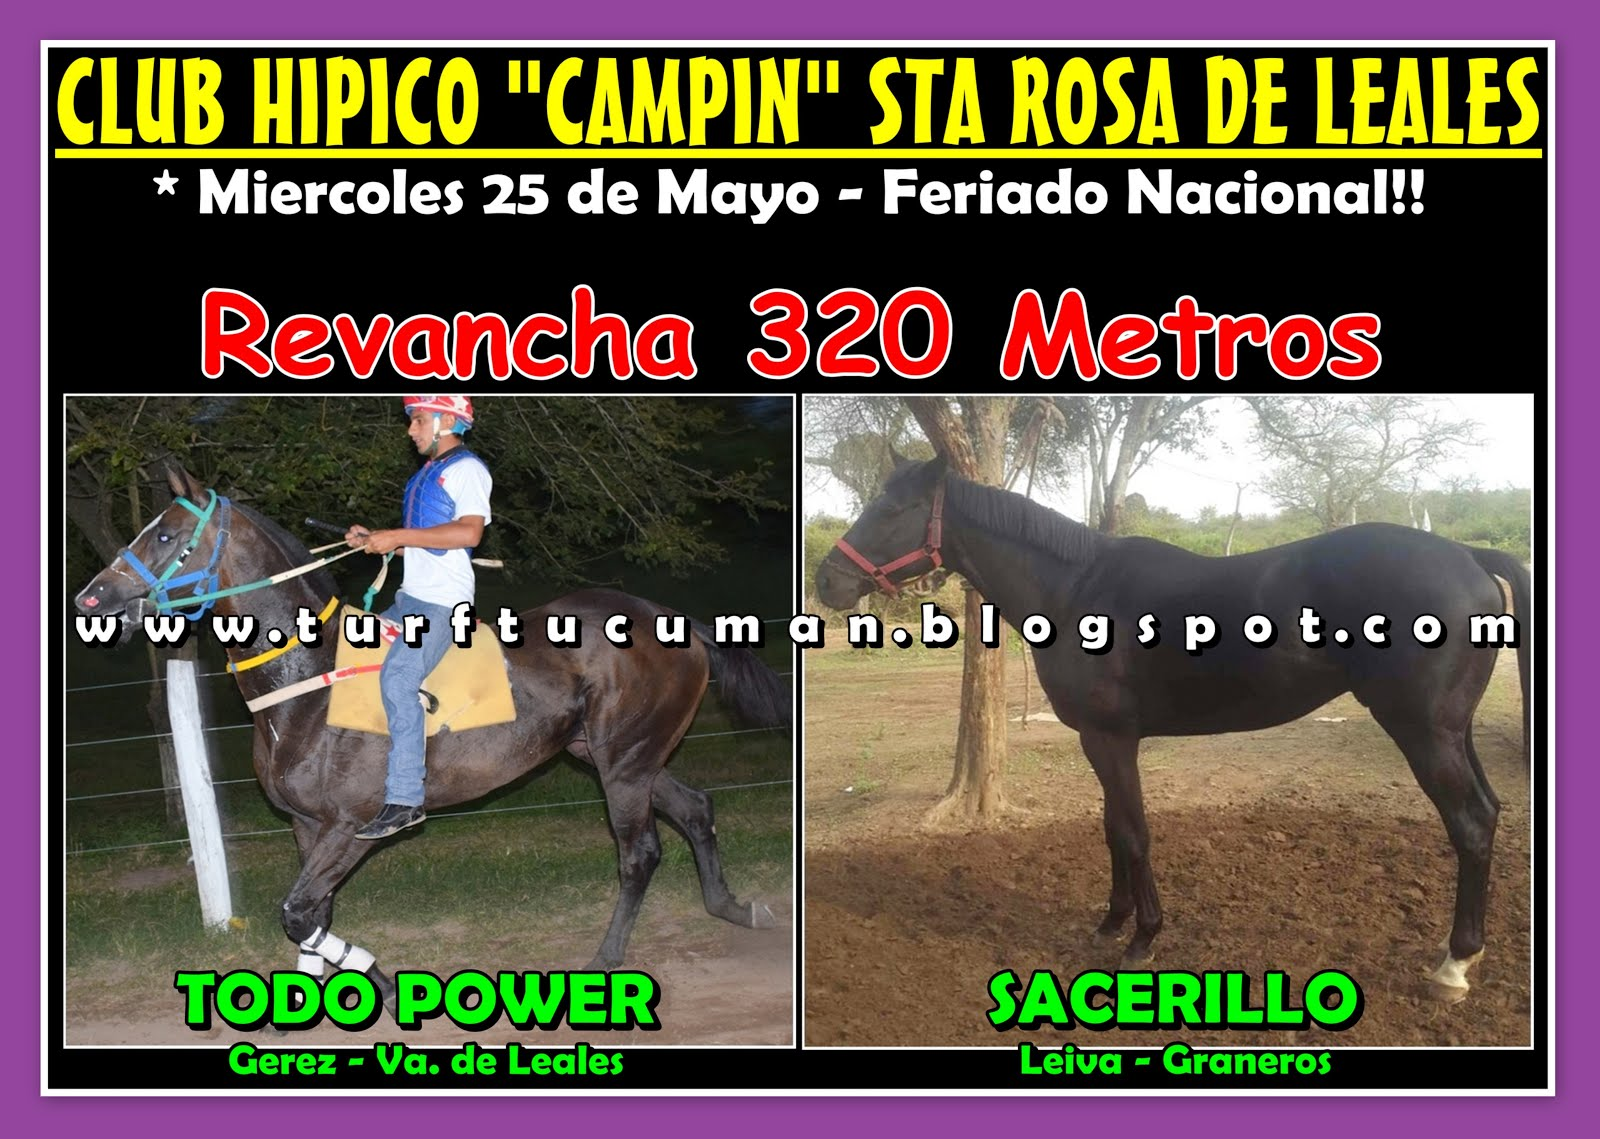 SACERILLO VS TODO POWER